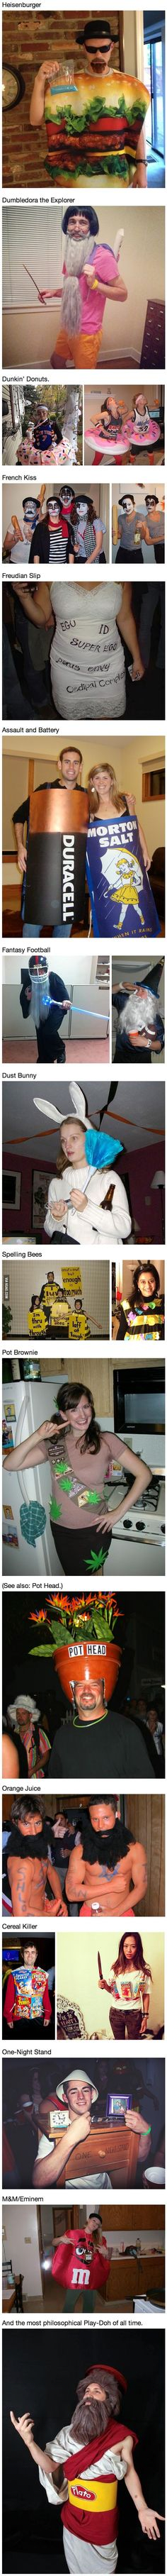 Awesome halloween costume ideas - double meanings - these are great!